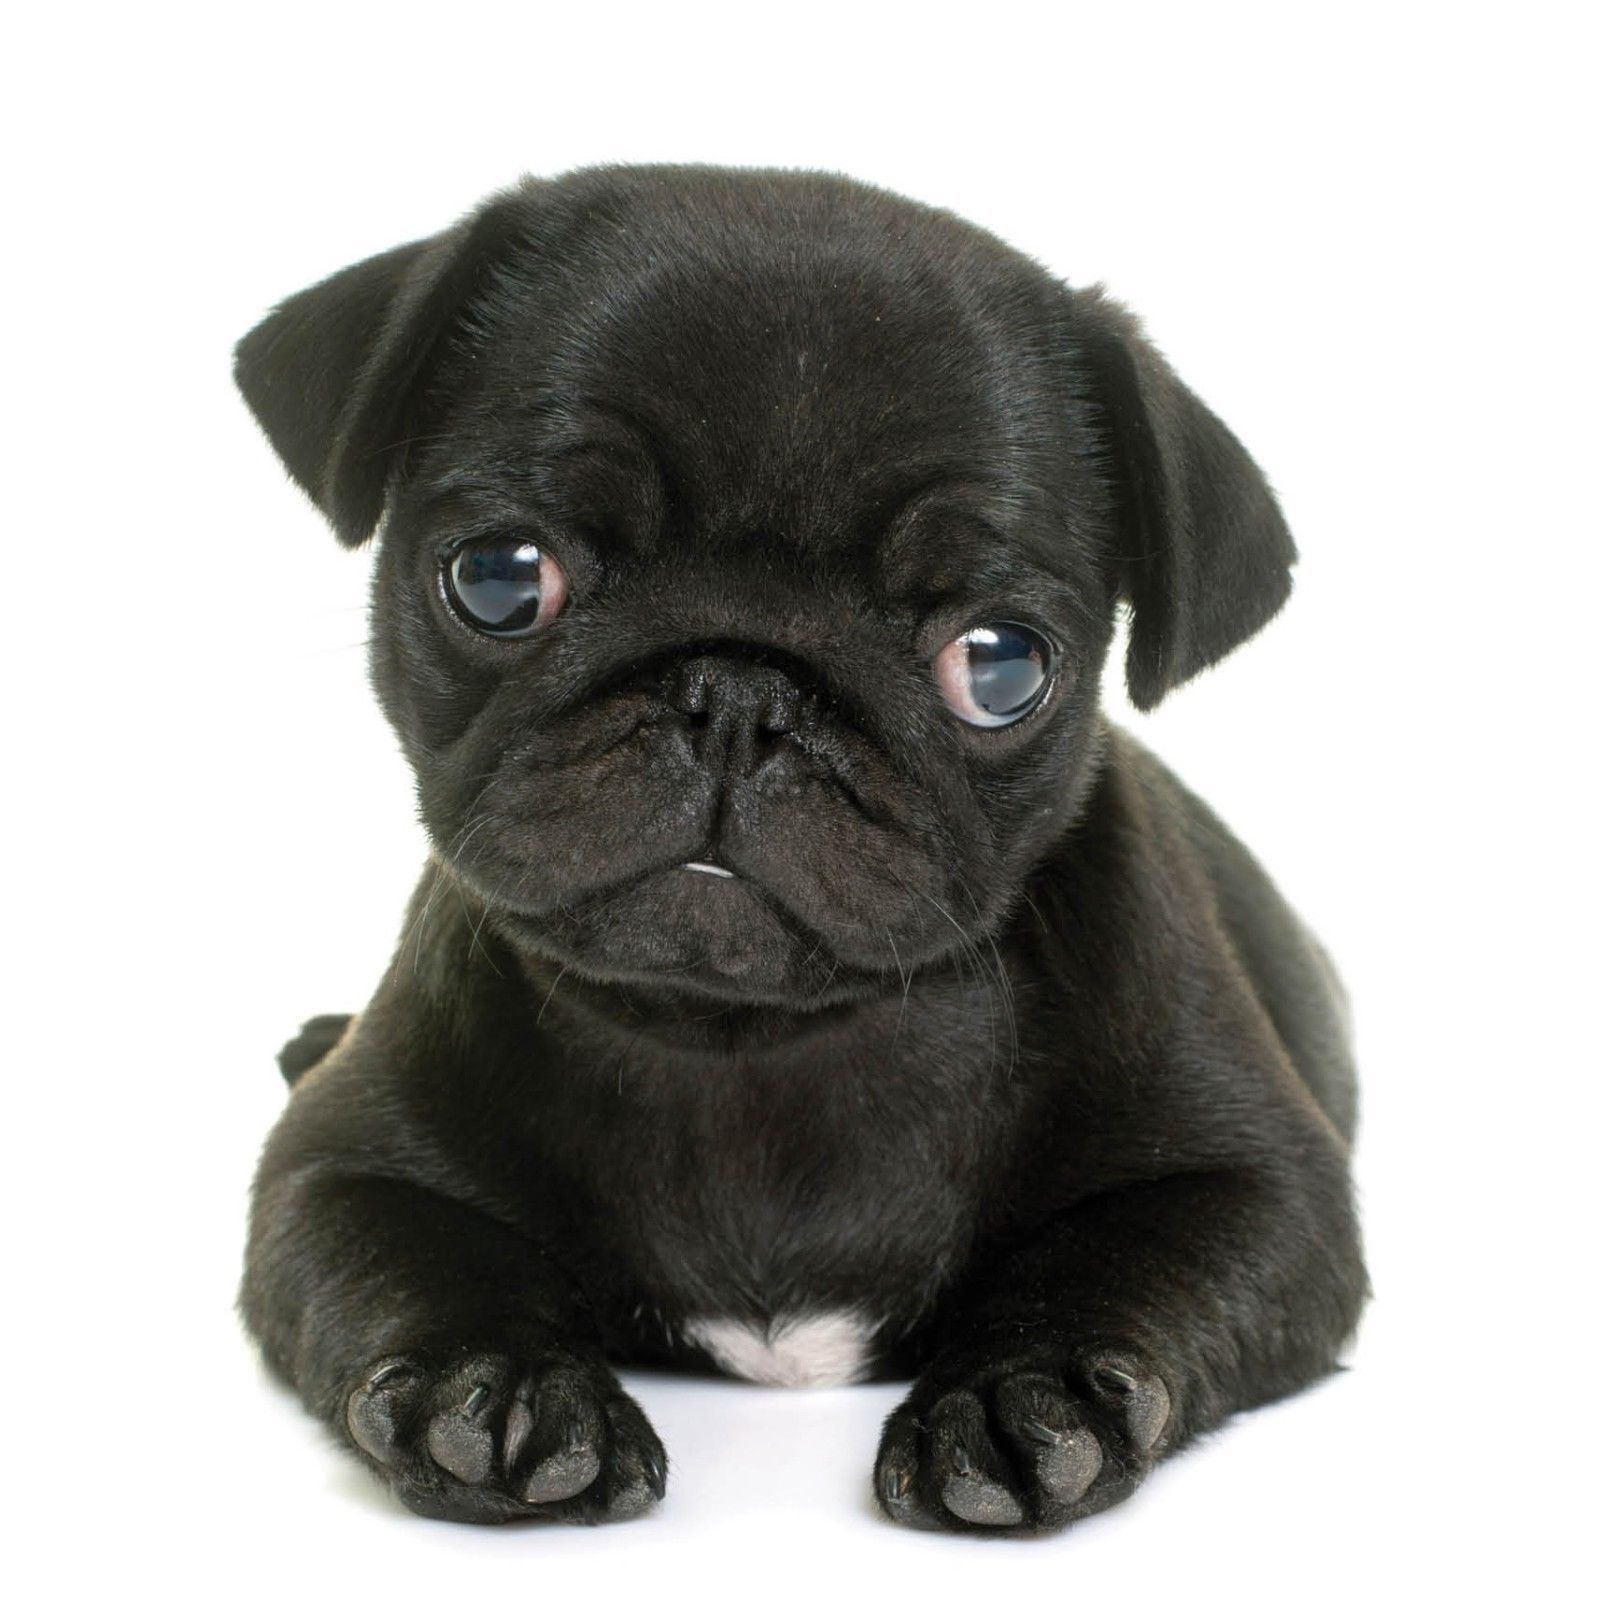 Black Pug Puppy Blank Card Available At Www Ilovepugs Co Uk Post